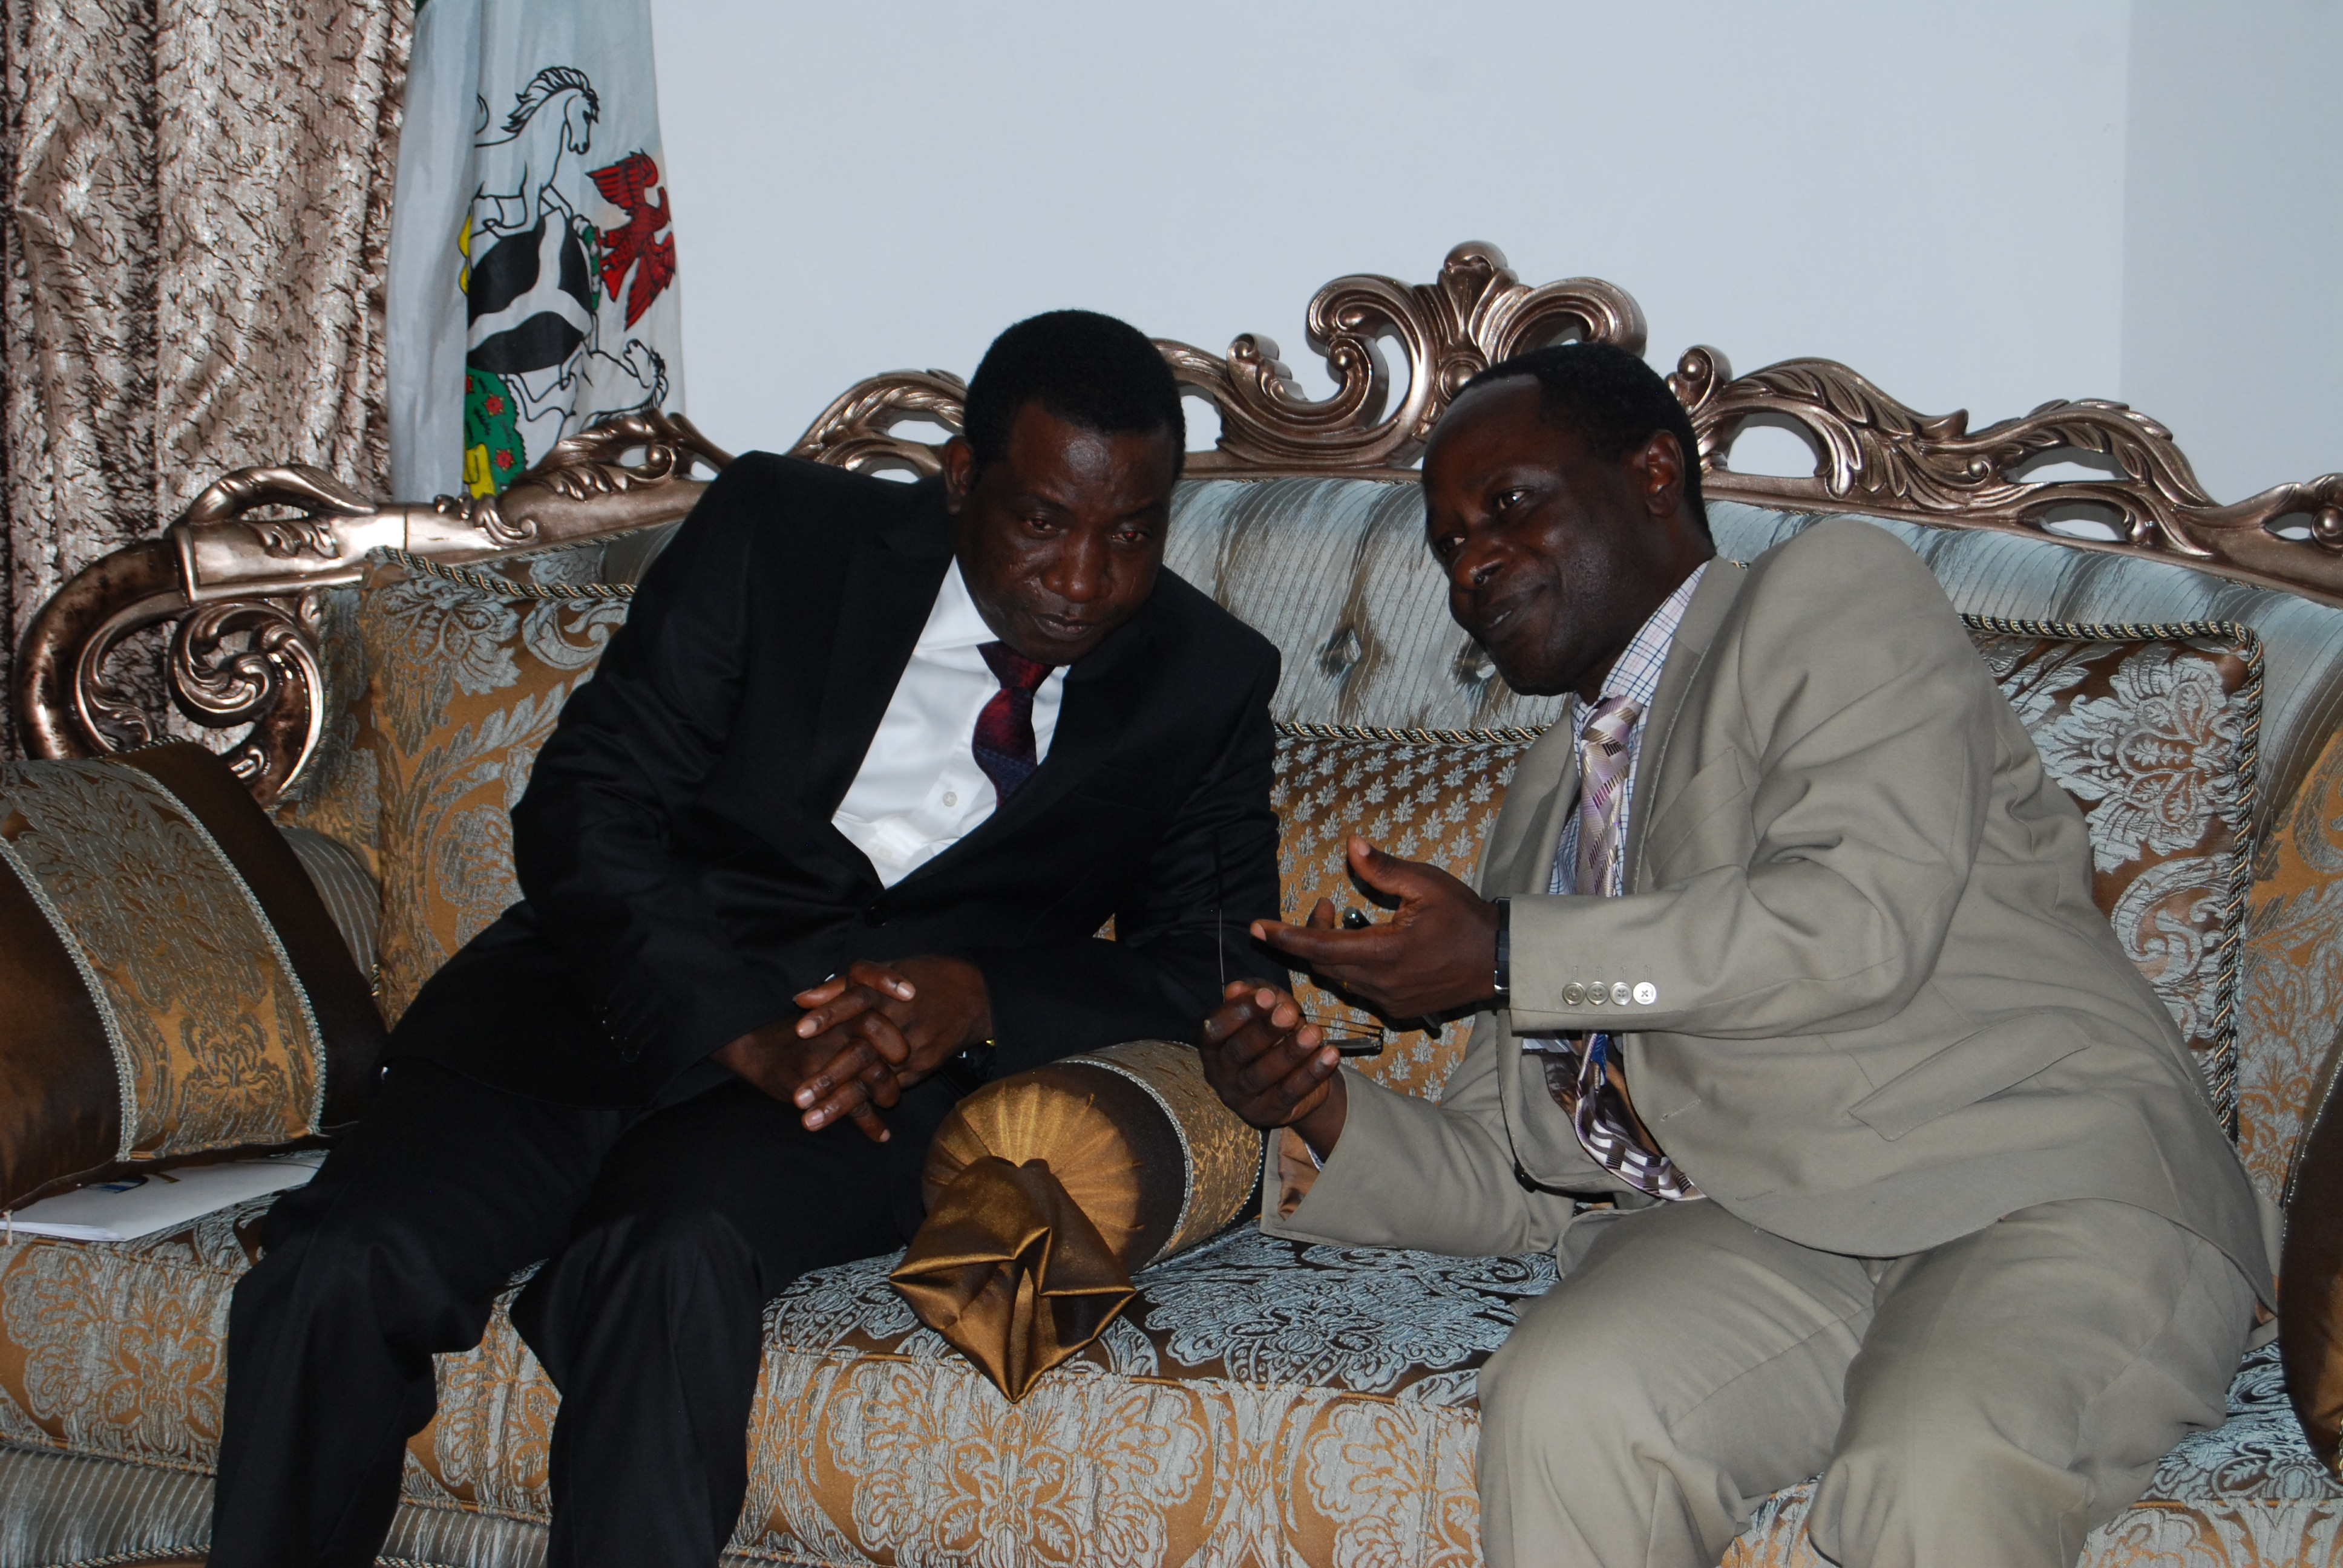 Plateau is being shortchanged by Lalong who is busy lining his pockets, says PDP